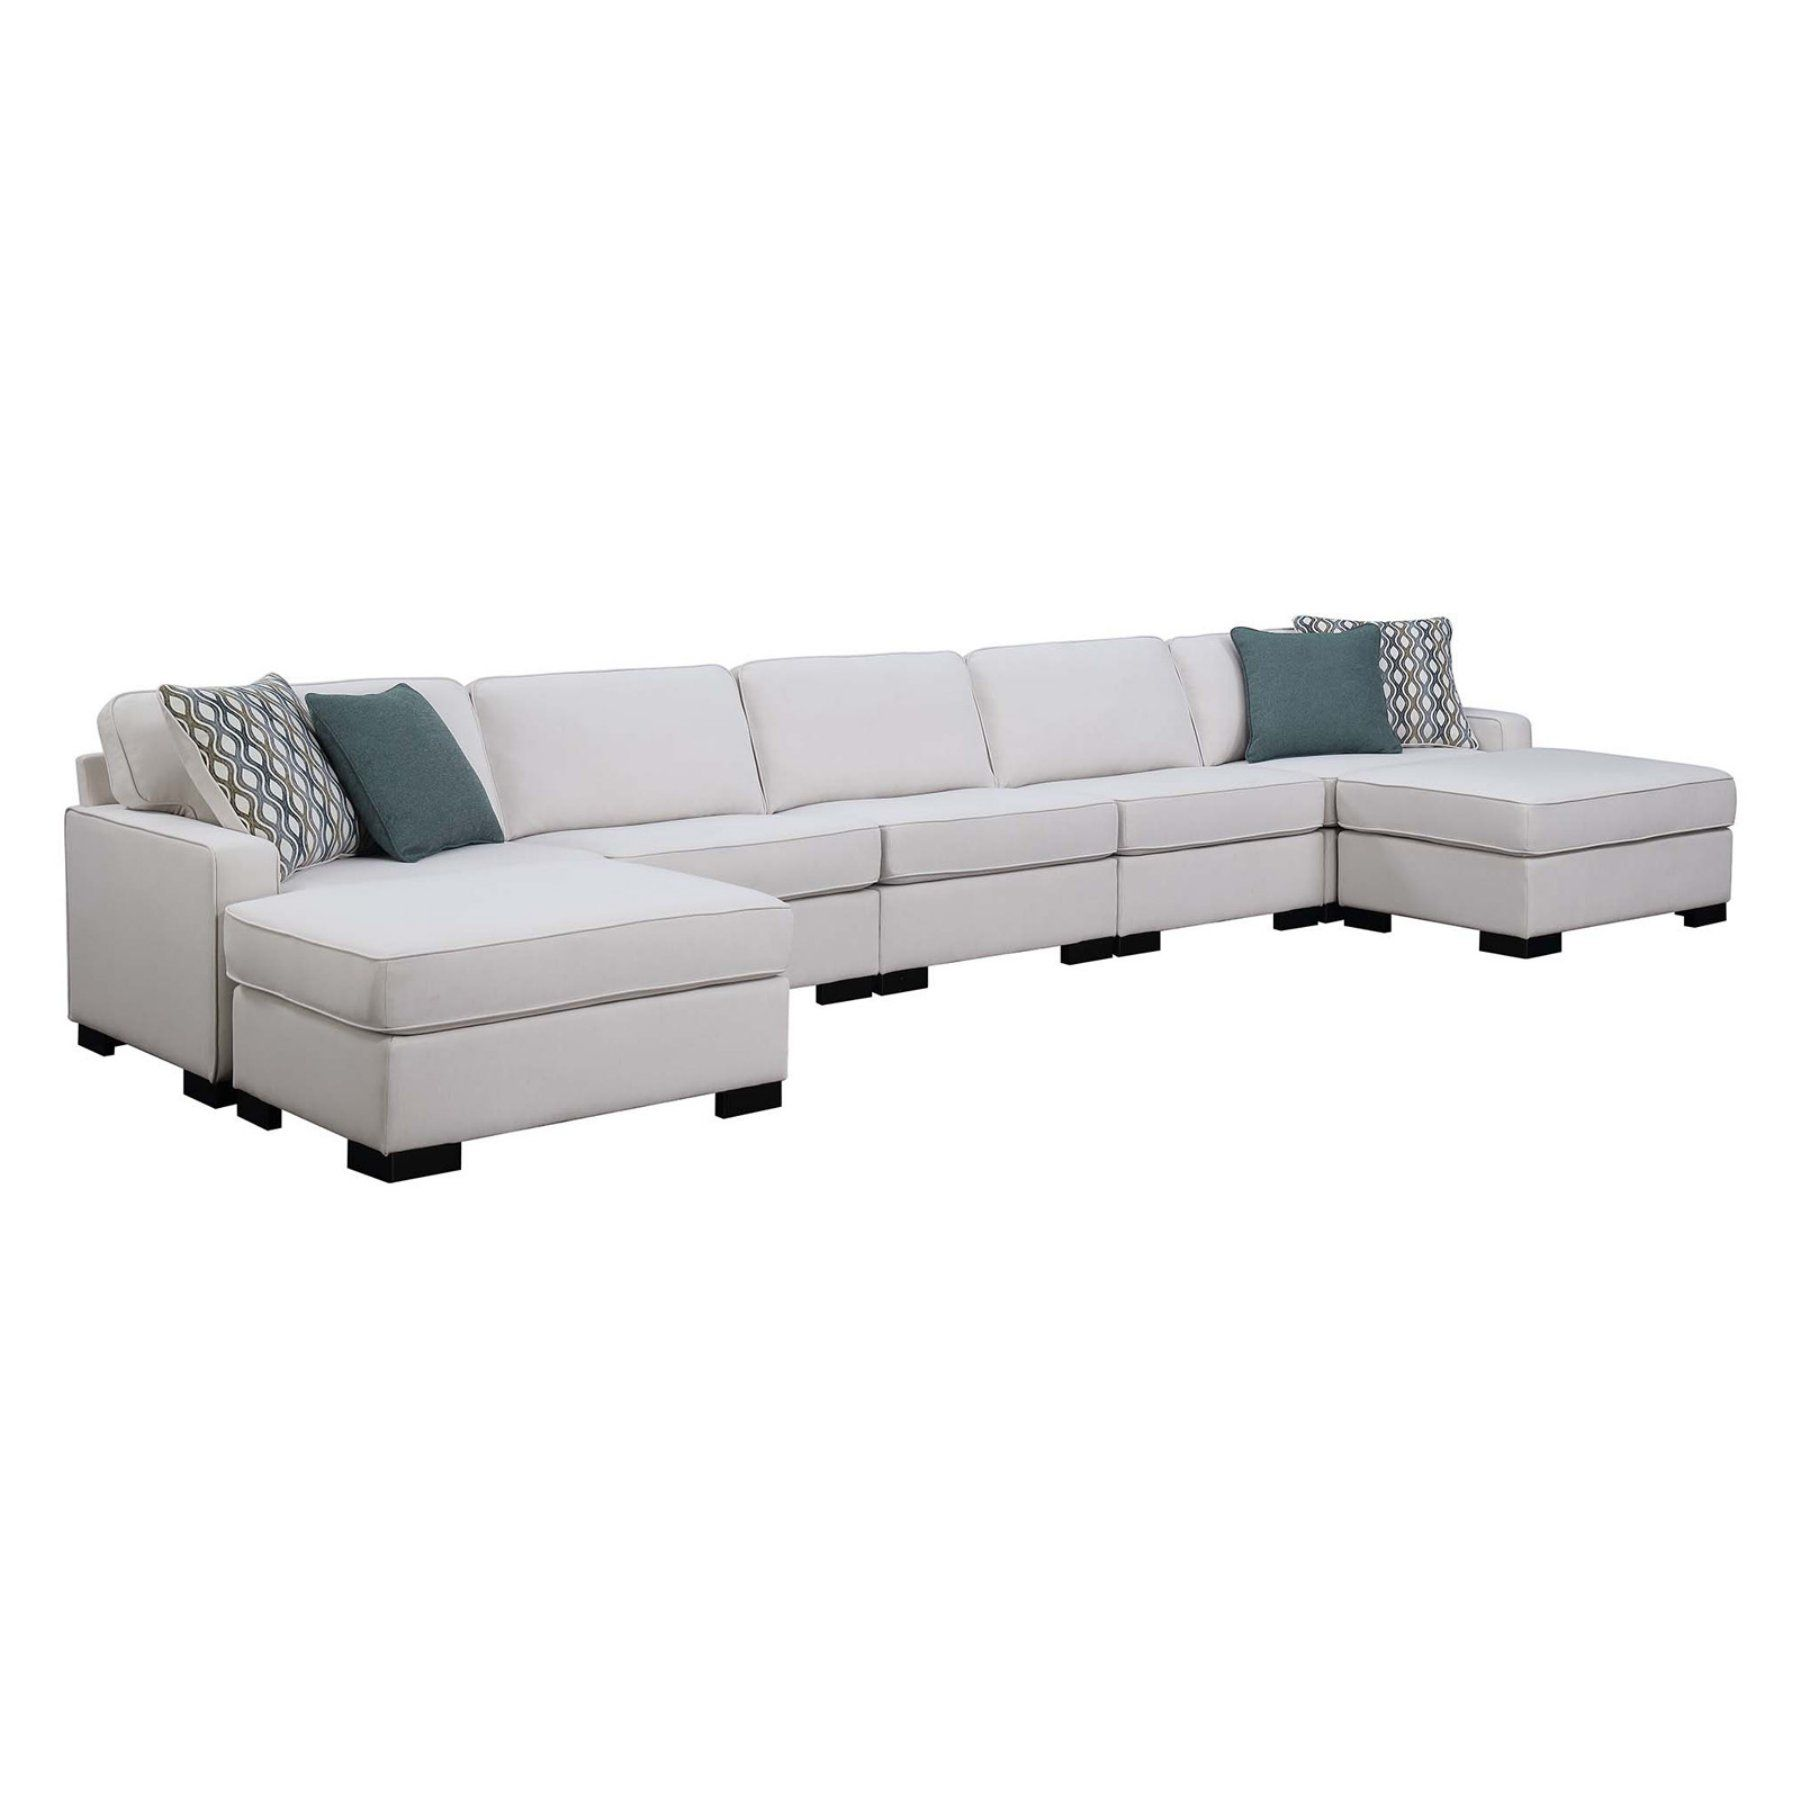 Best Scott Living Wylder 7 Piece Sectional Sofa Coa4128 400 x 300